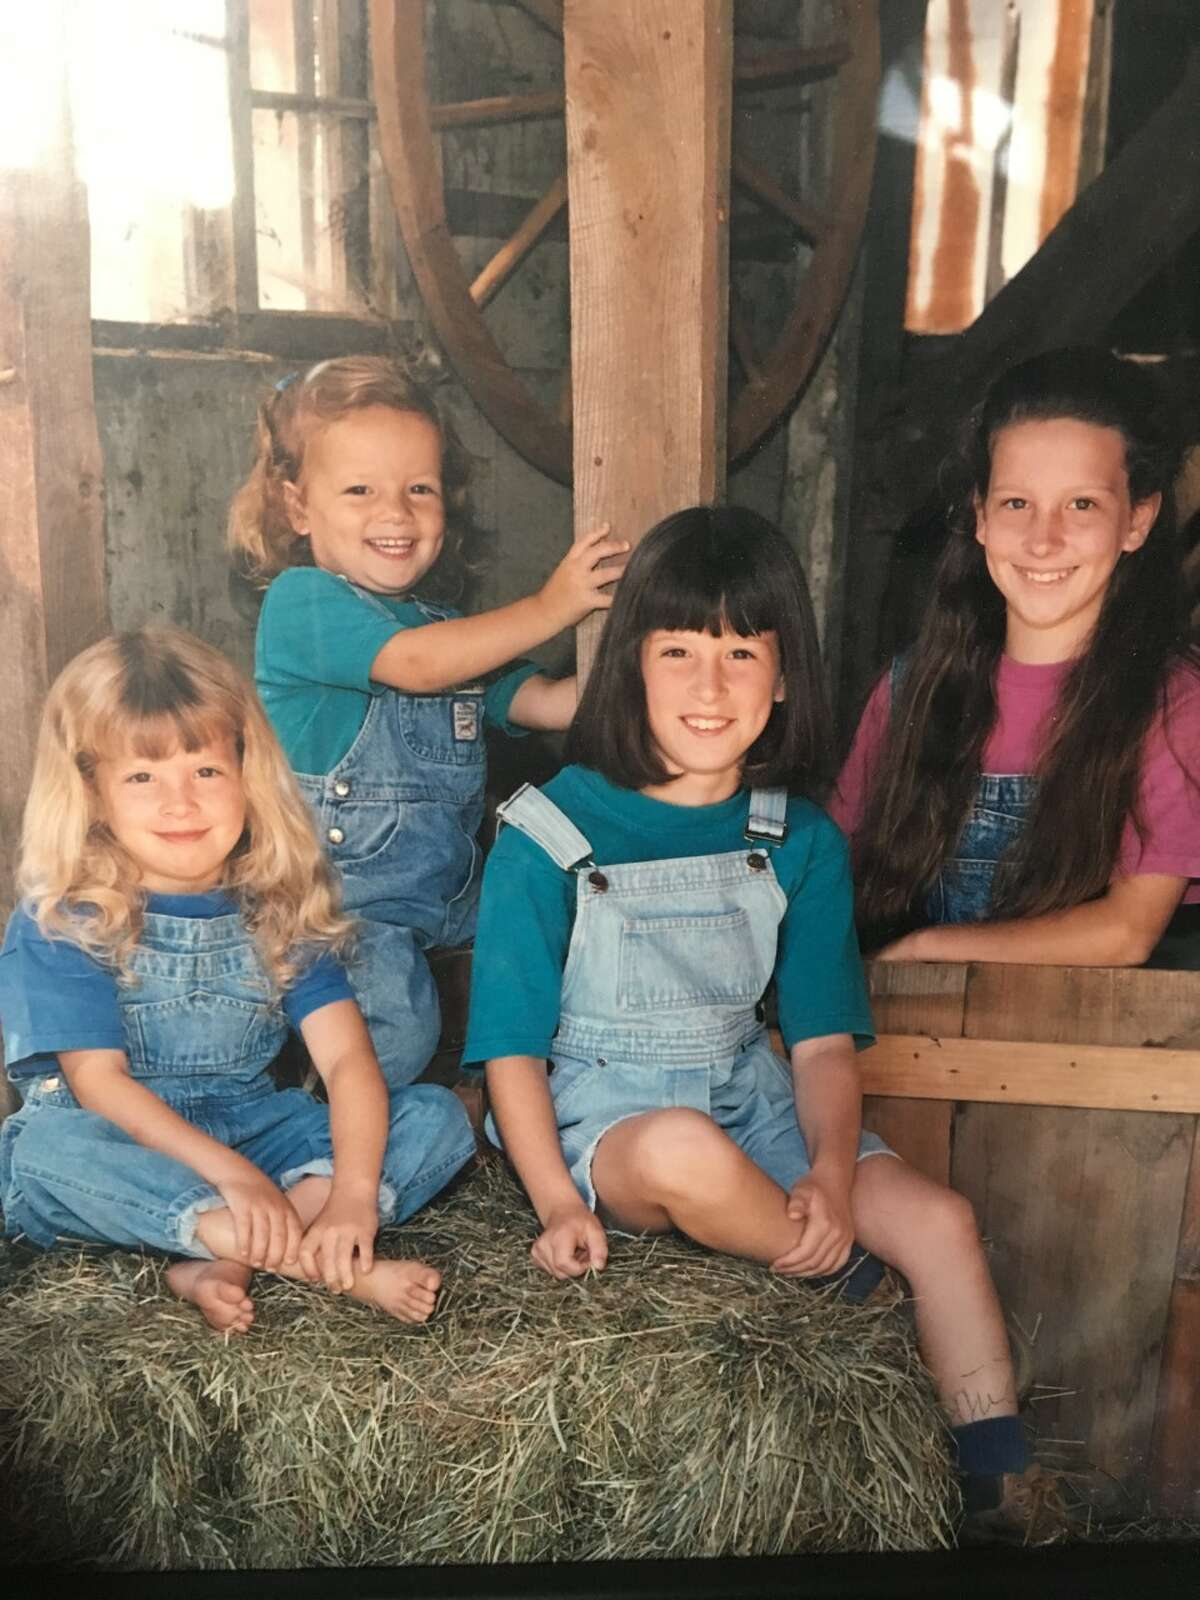 1. I am the second youngest of four sisters. And no, my parents weren't trying for a boy. My dad claims he only wanted daughters. We endured many themed photo shoots that Mom says I behaved terribly for, which really doesn't sound like me. (I'm on the far left).